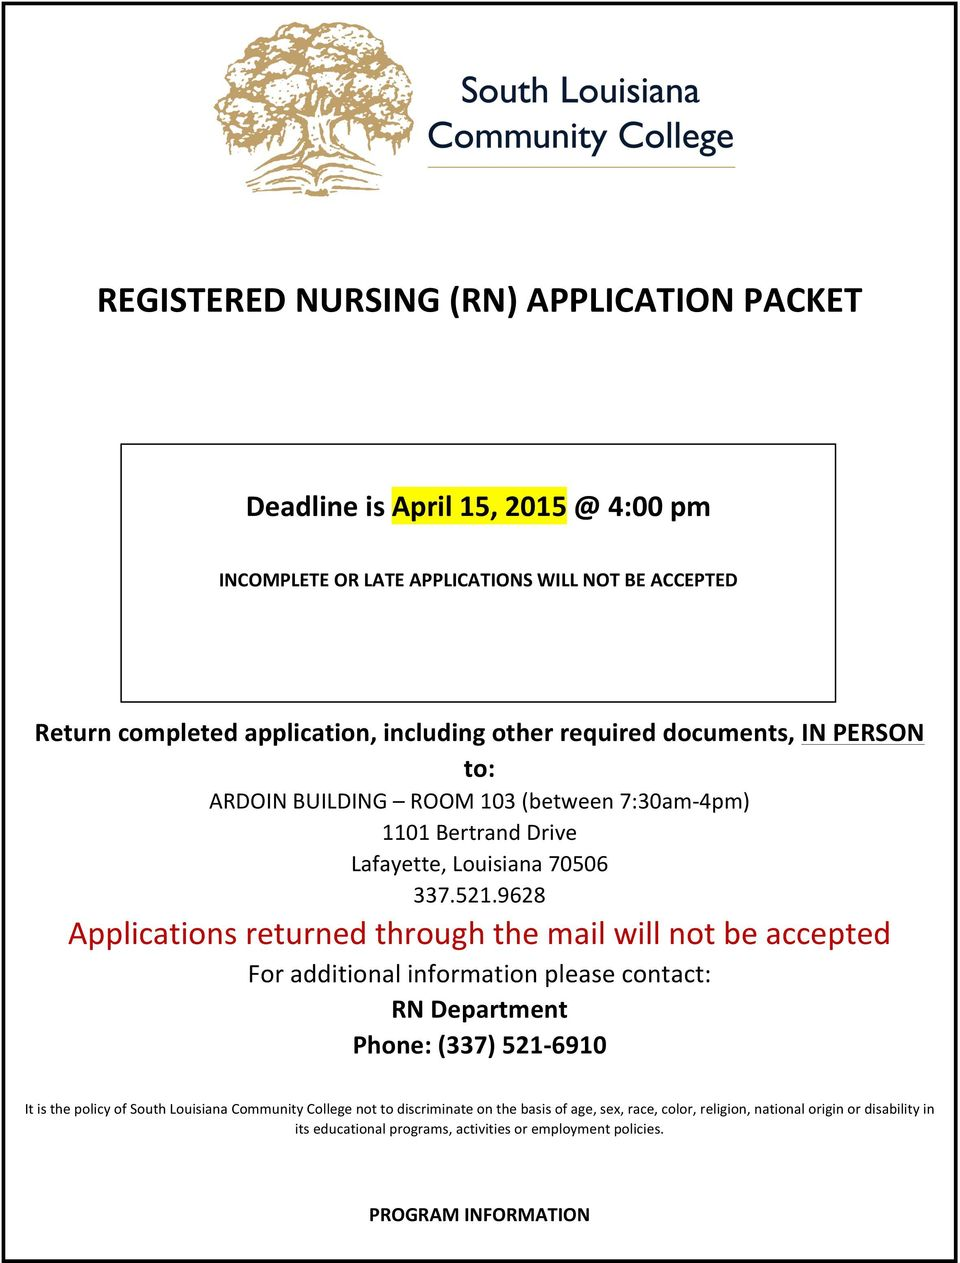 9628 Applications returned through the mail will not be accepted For additional information please contact: RN Department Phone: (337) 521-6910 It is the policy of South